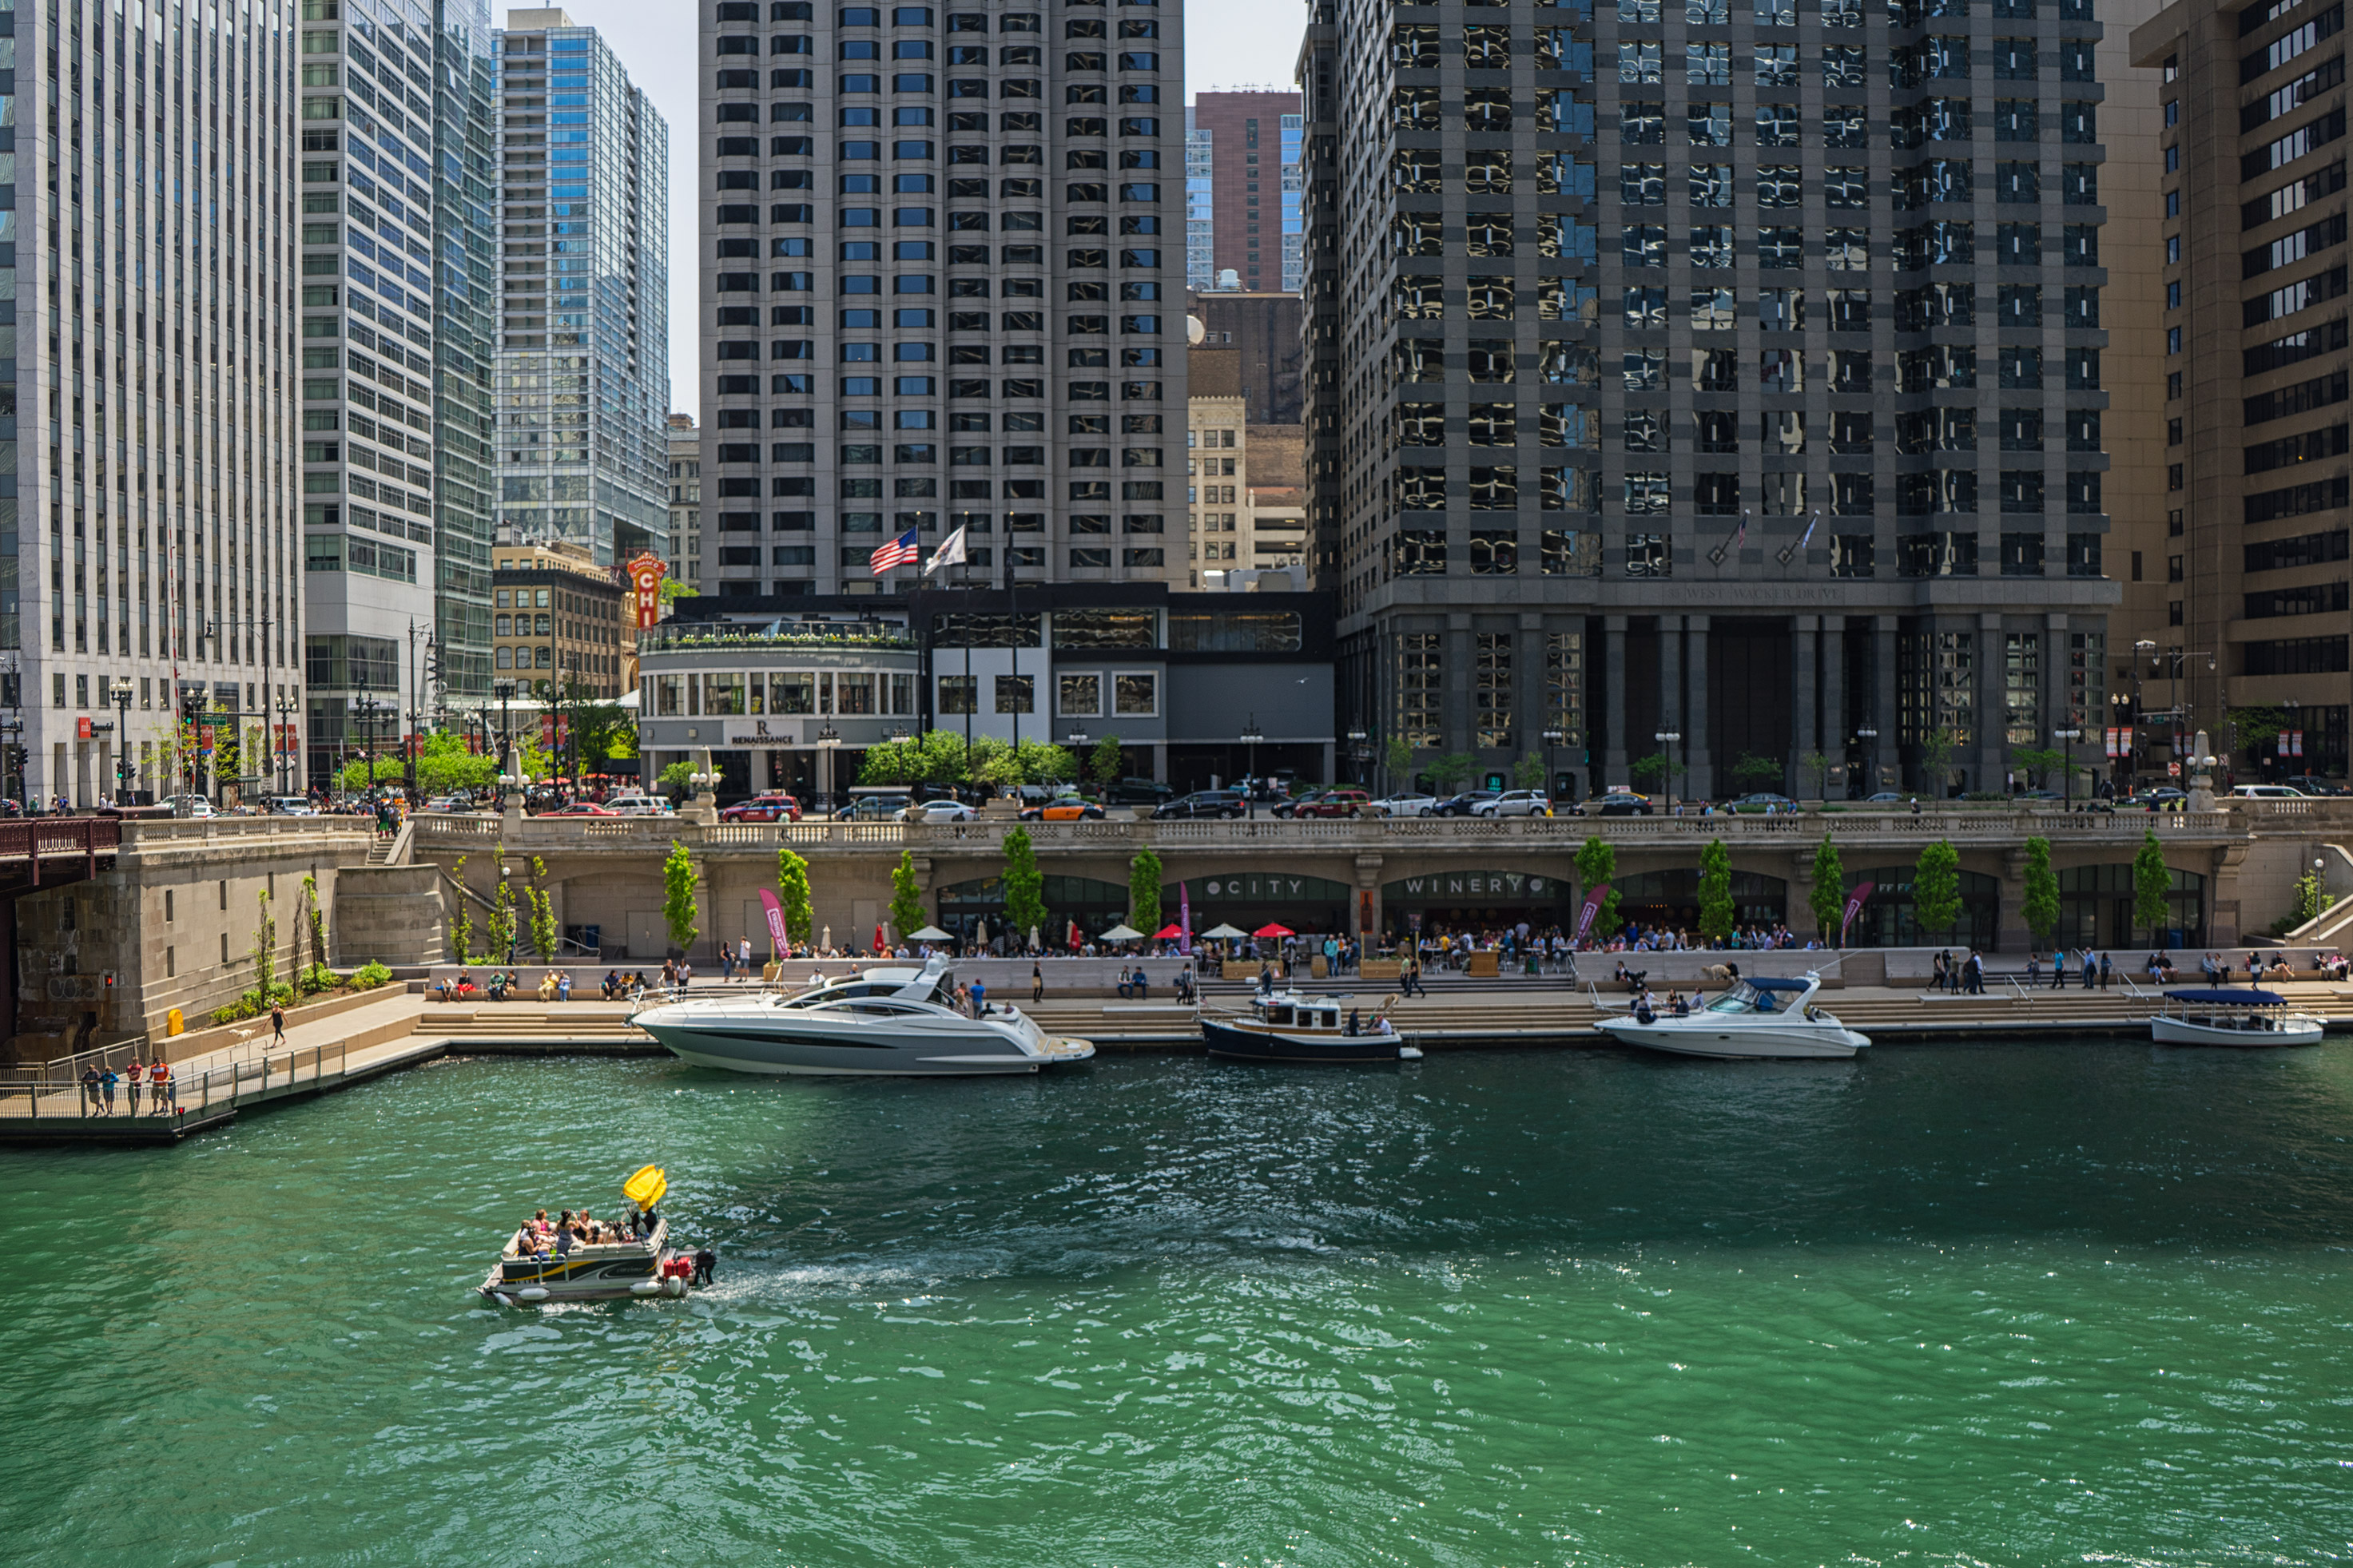 Your Guide To Exploring Chicago's Riverwalk